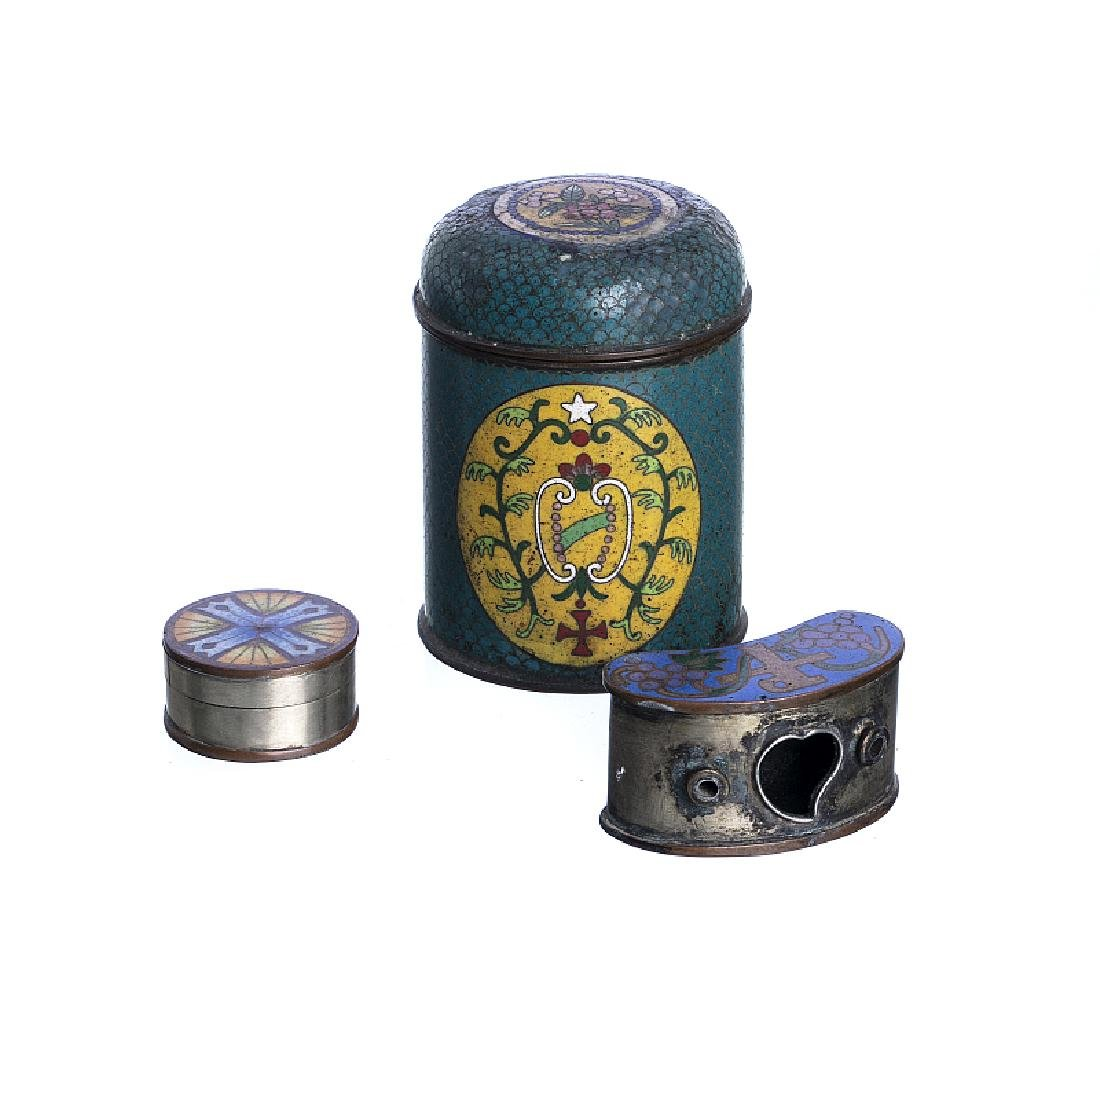 Two boxes and Chinese cloisonné inkwell, Christian